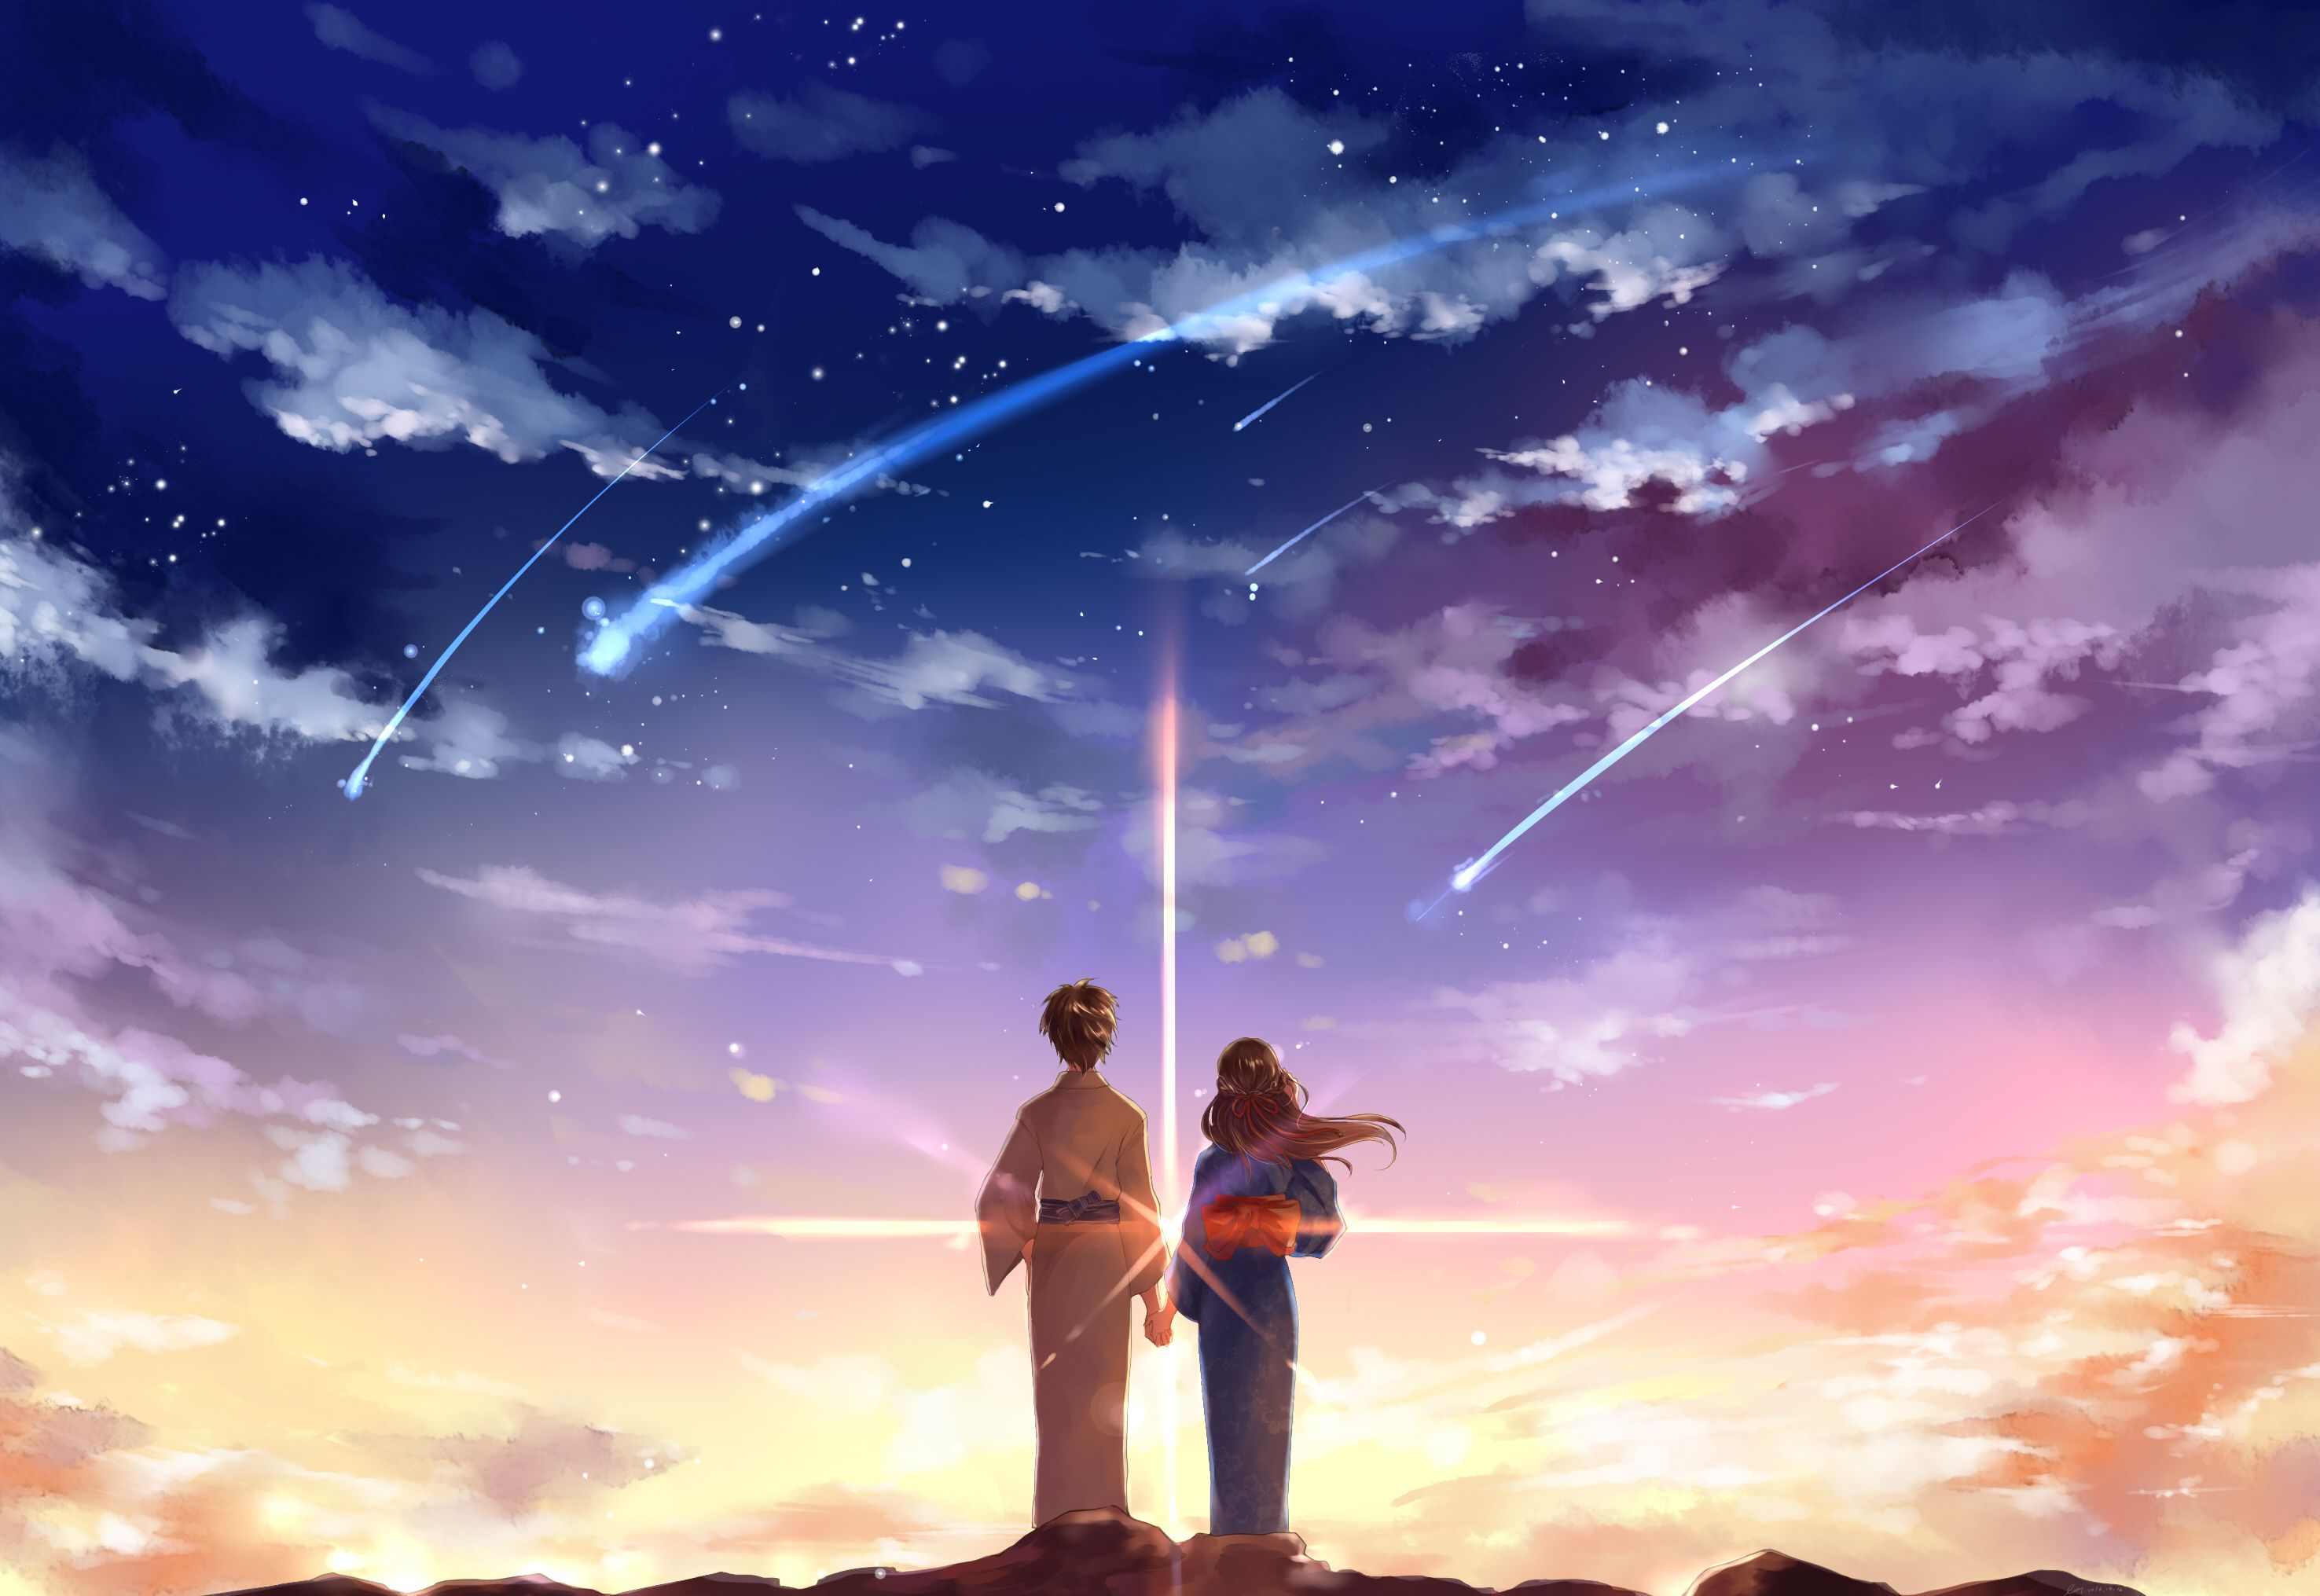 Wallpapers, Anime, Your Name. 1920x1080 Casal anime